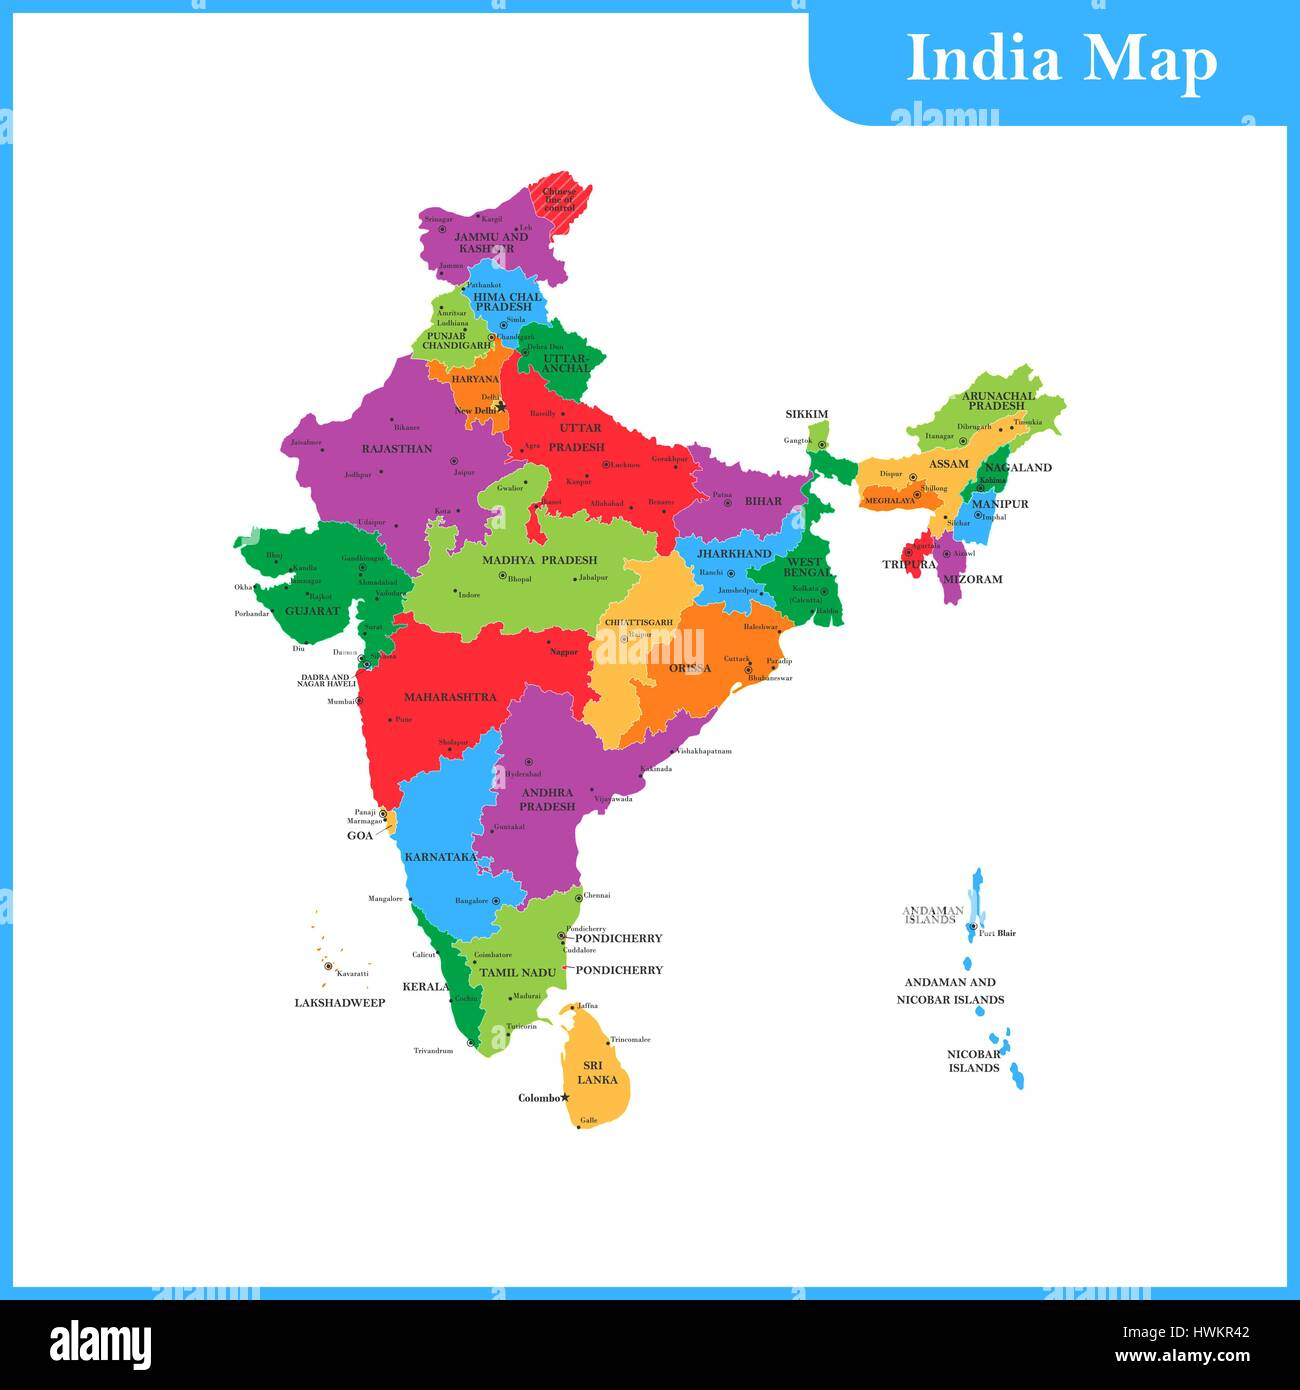 India Map With All States.India Map With States Stock Photos India Map With States Stock